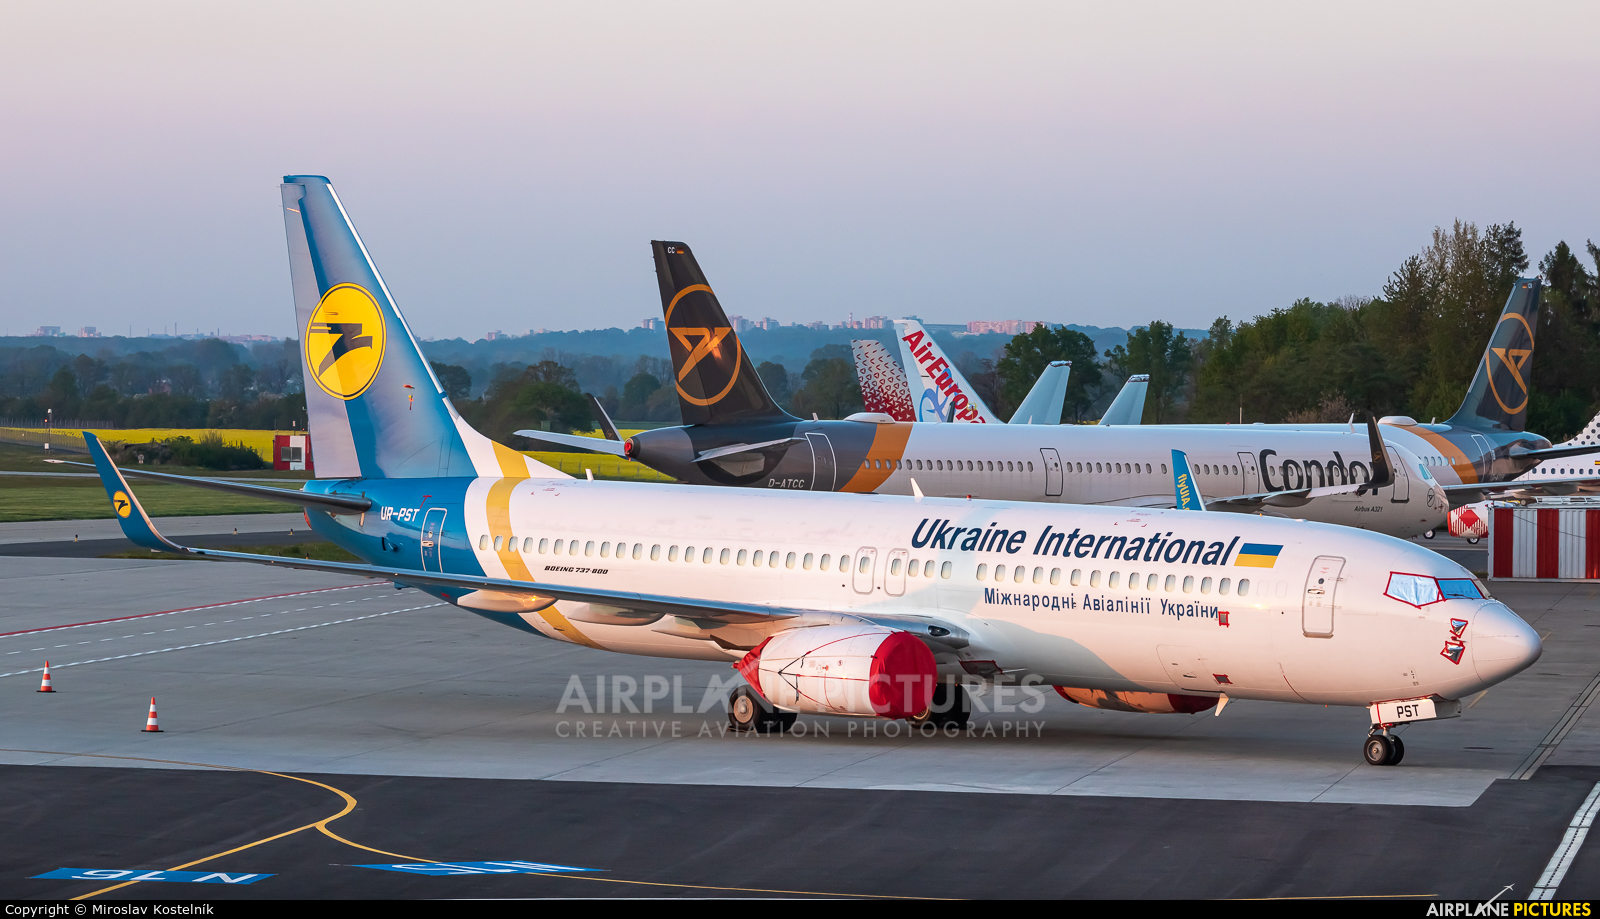 Ukraine International Airlines UR-PST aircraft at Ostrava Mošnov